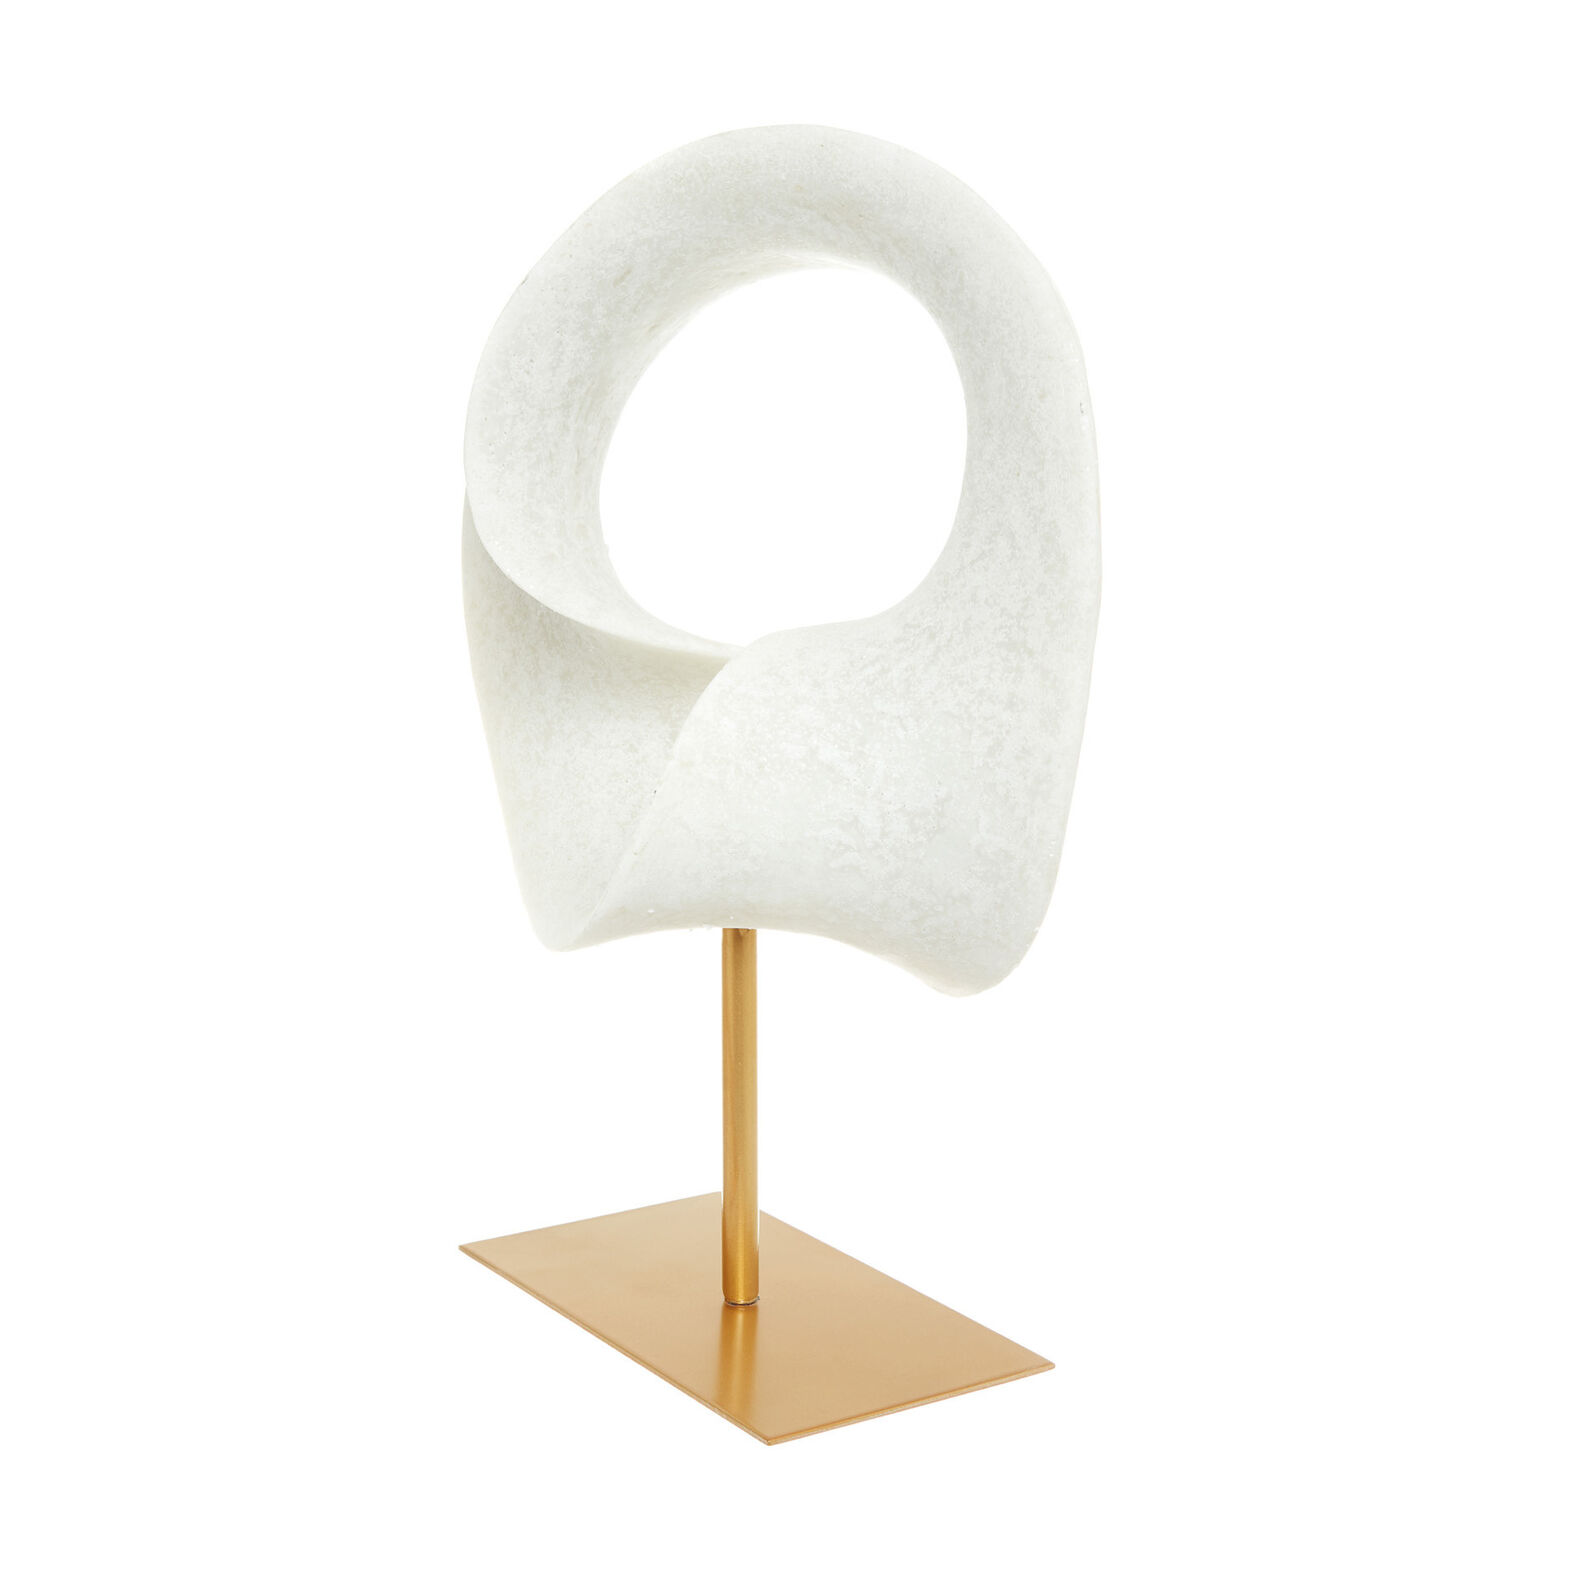 Hand-finished abstract sculpture on a stand